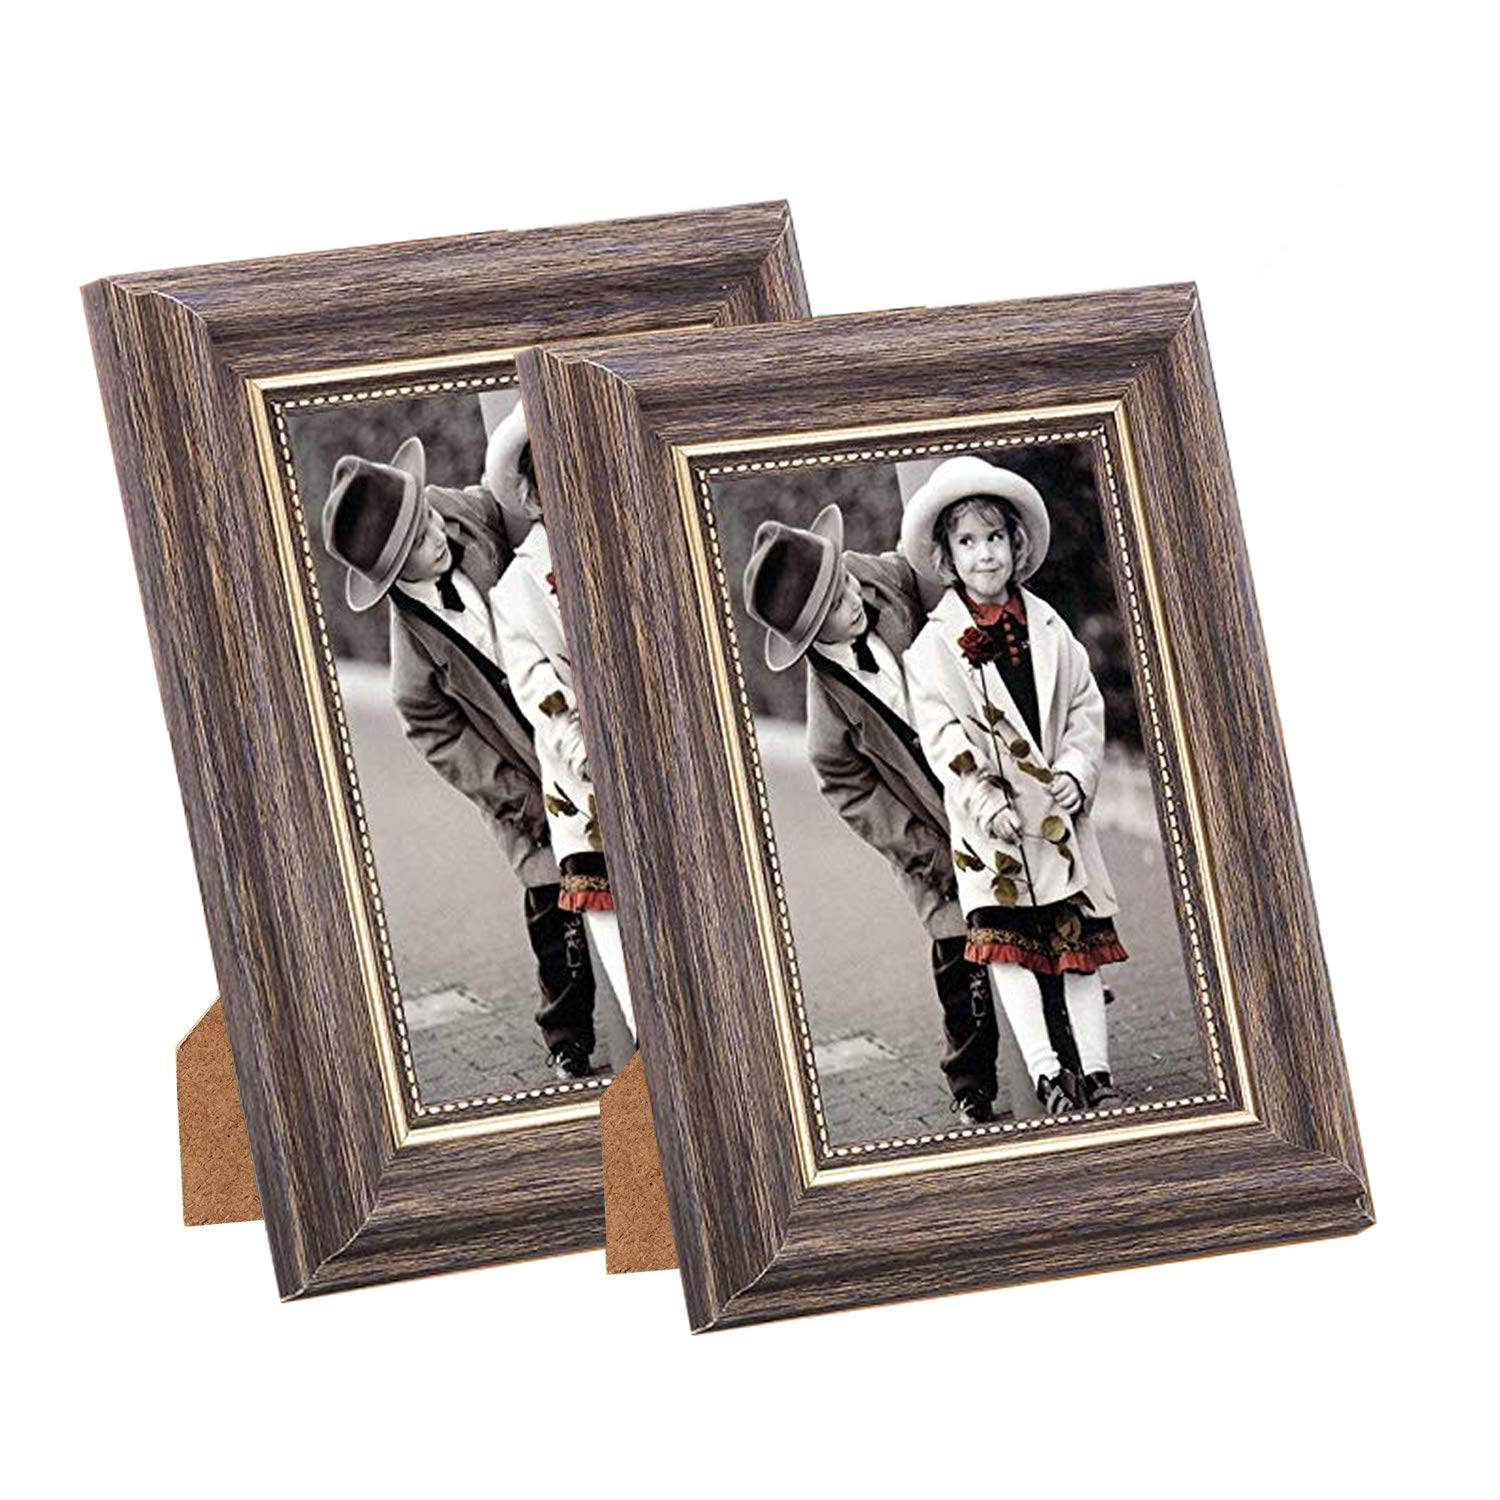 Msicyness Photo Frame 8x10 Vintage Portrait Picture Frames Retro Landscape & Horizontal Poster Frame Standing or Wall Mountable, Birthday Gift for Parents Woman Wedding Anniversary 10x8 Inch Coffee